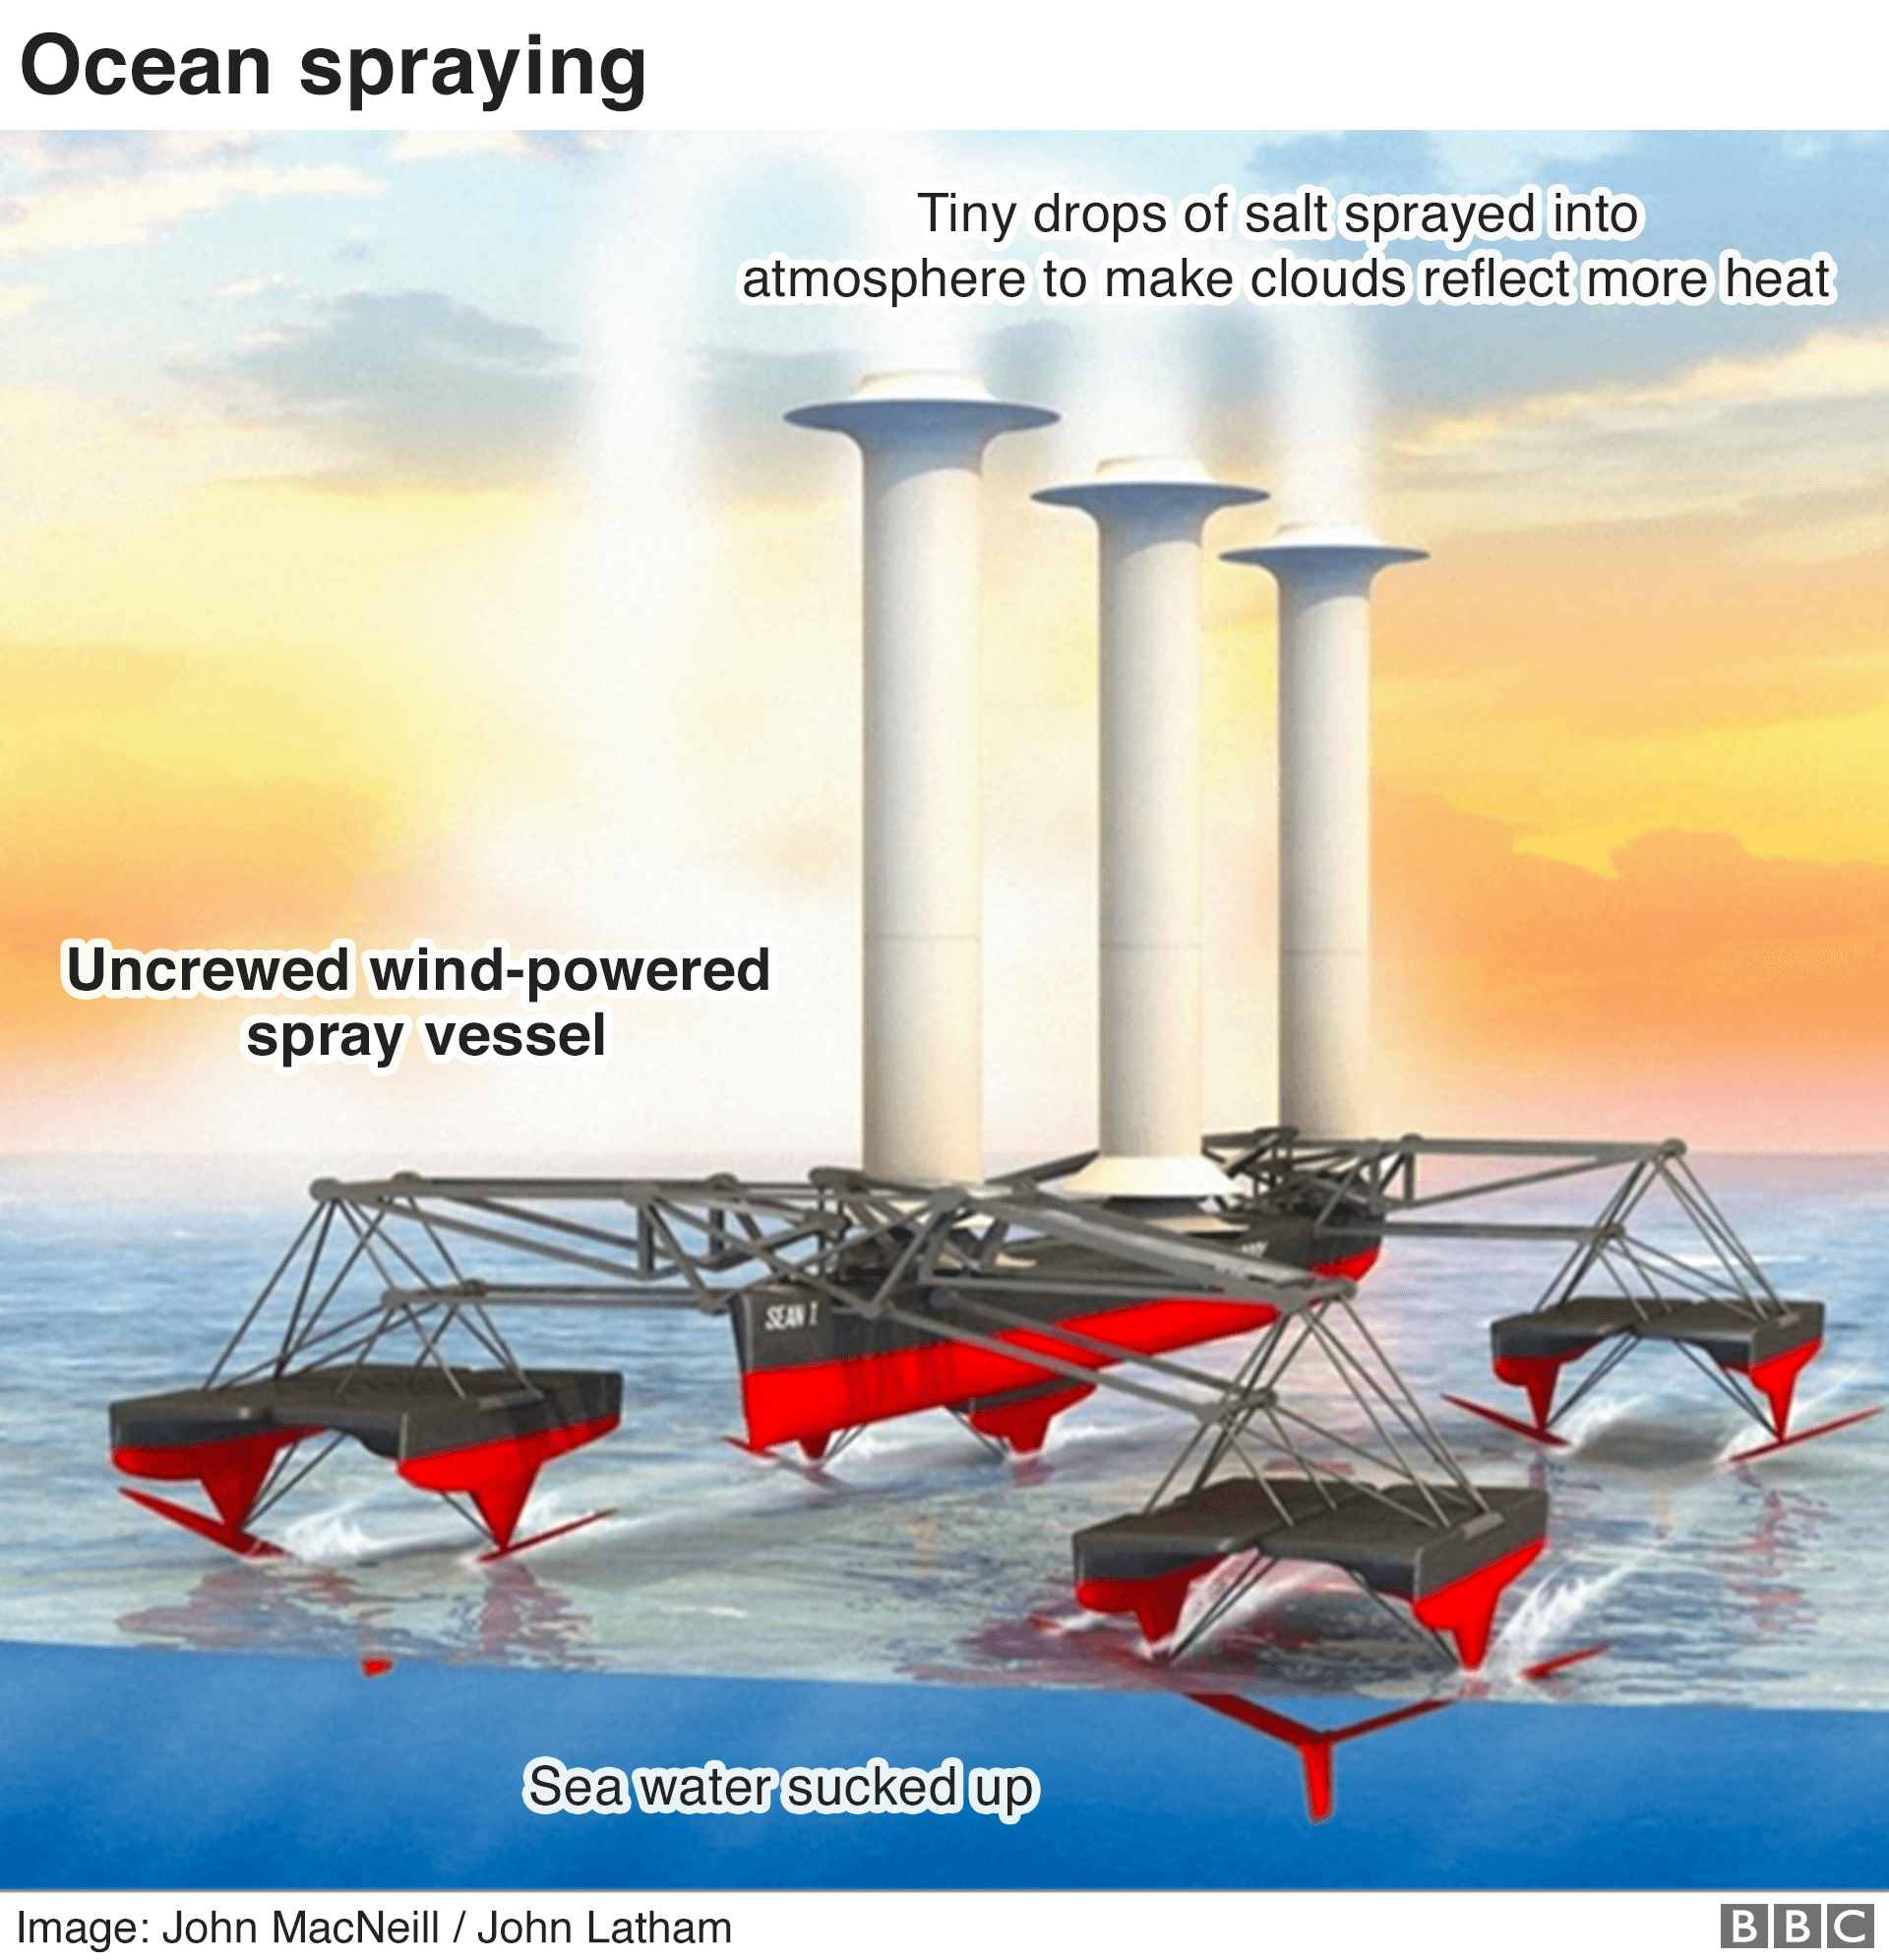 Graphic: How unmanned ships could be used to 'brighten' clouds and reflect sunlight